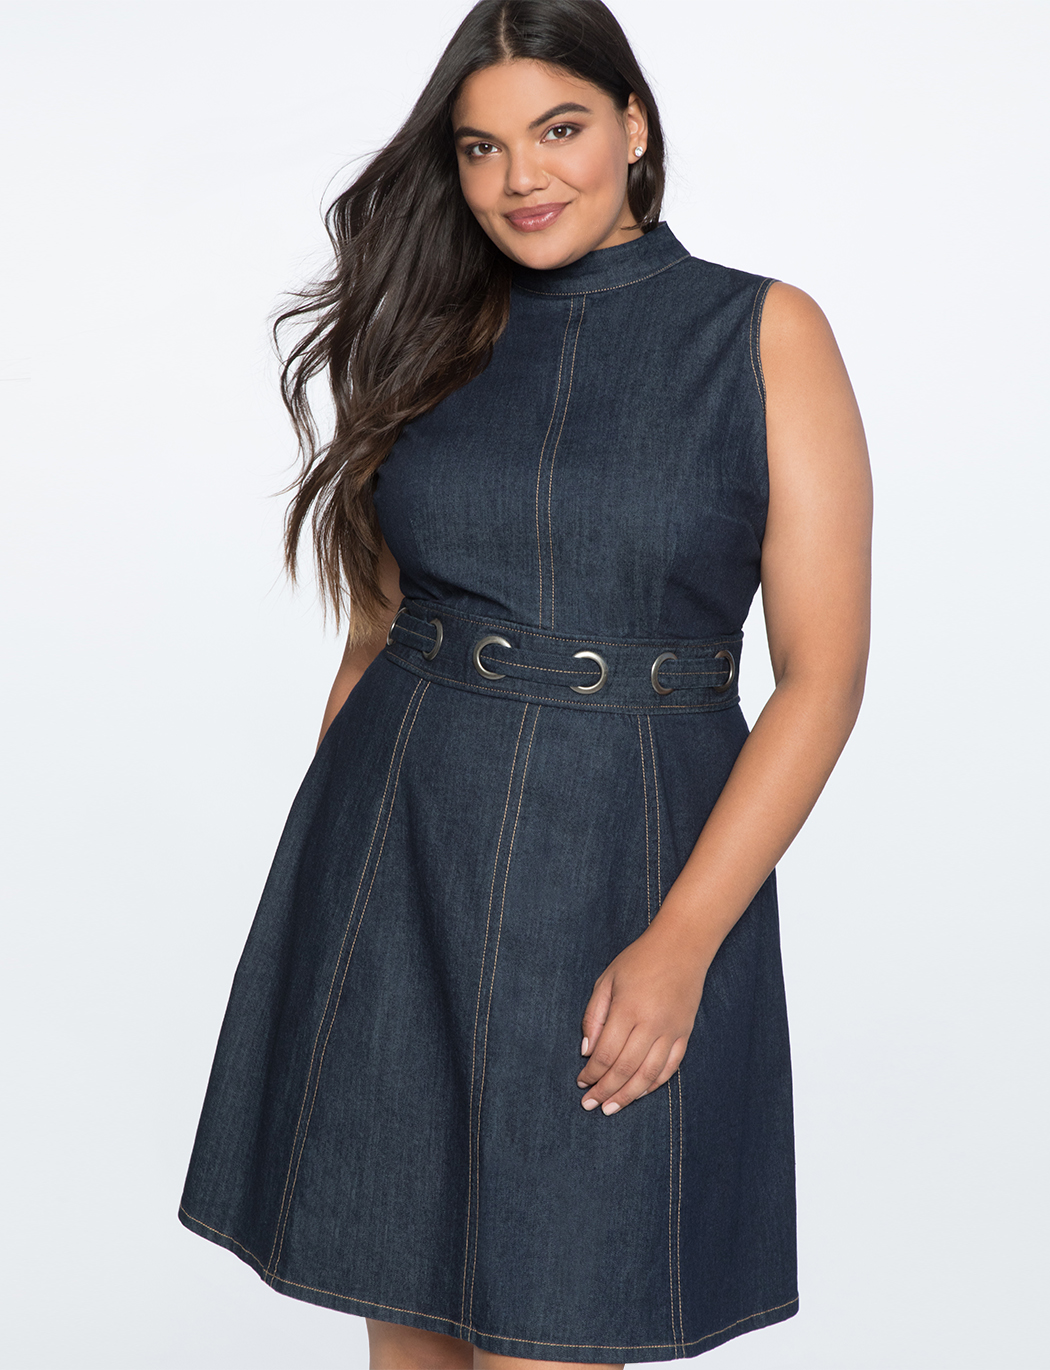 A-Line Denim Dress with Grommet Detail | Women\'s Plus Size ...